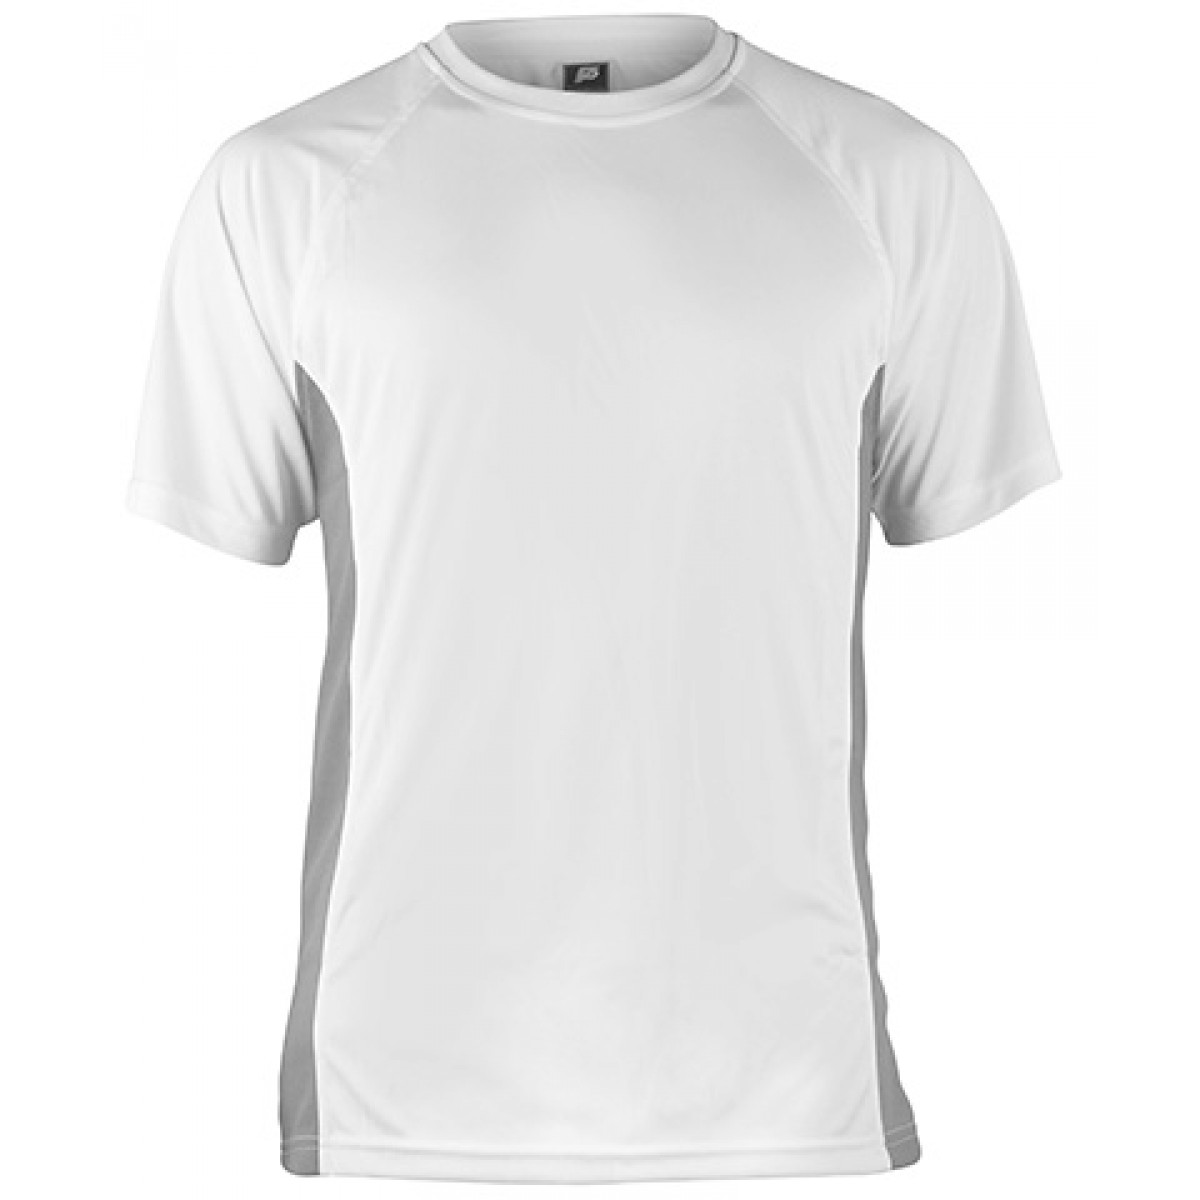 Short Sleeves Performance With Side Insert-White/Gray-L